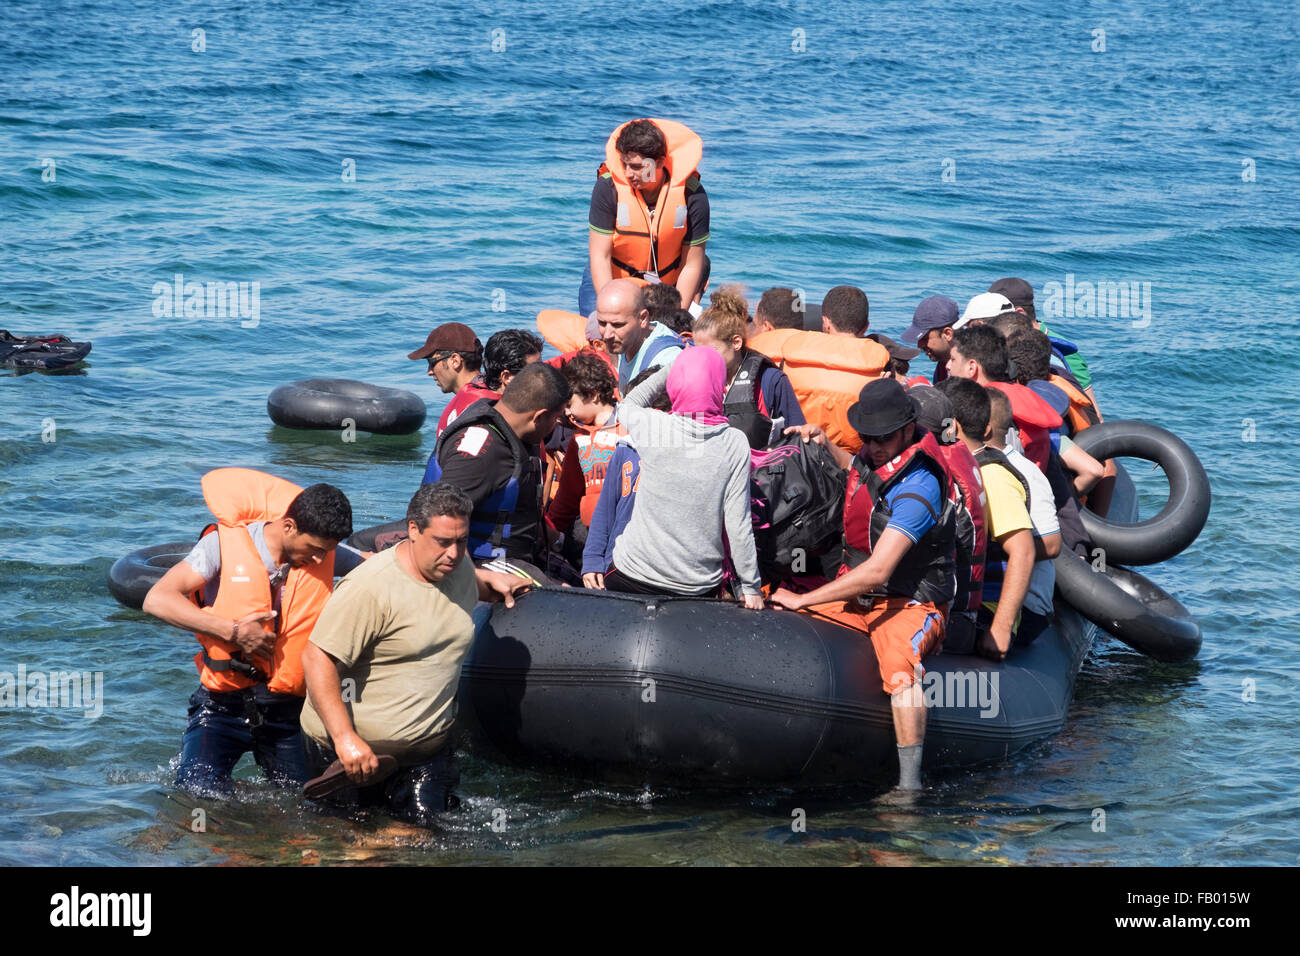 Syrian refugees cross from Turkey in a rubber raft to land on a beach on the Greek island of Lesvos/Lesbos Stock Photo